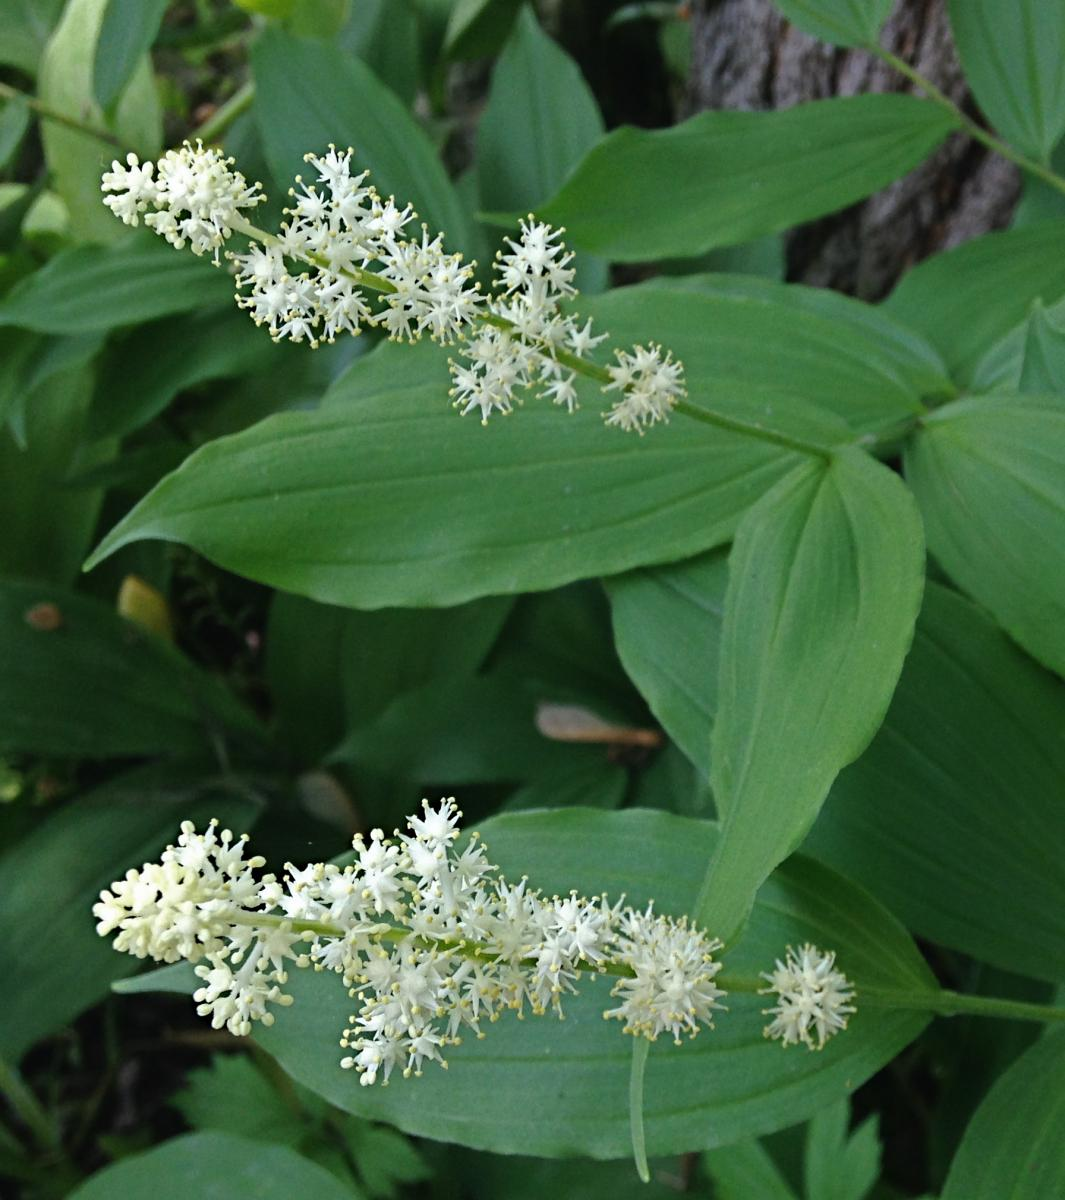 Gardening With Native Plants In Shady Evanston